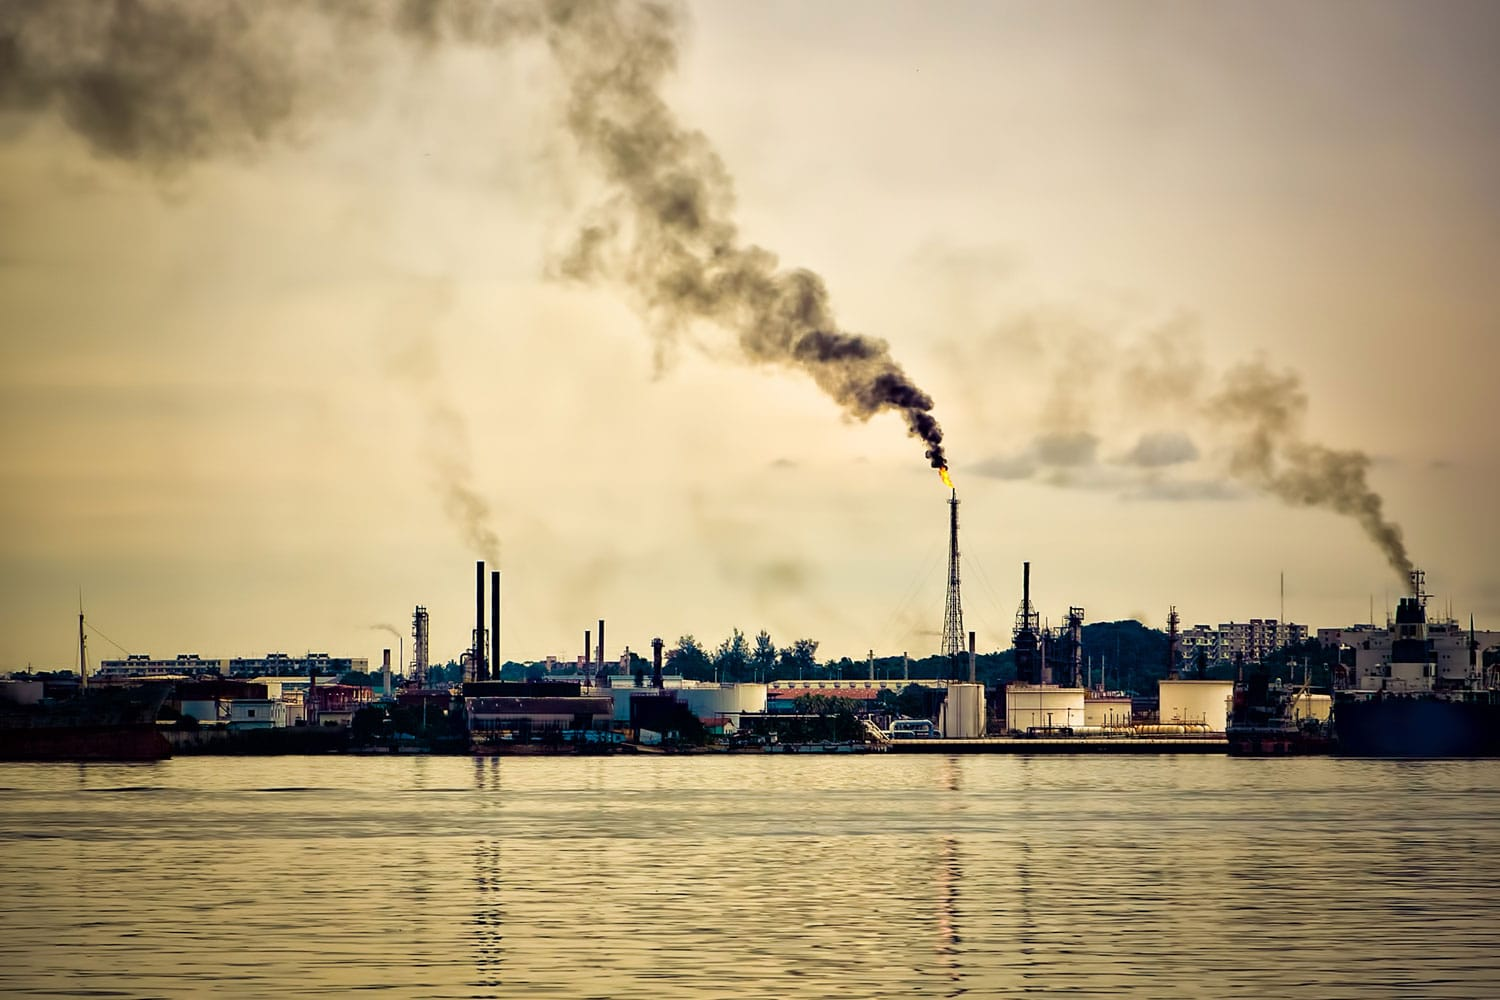 Atmospheric Water Pollution